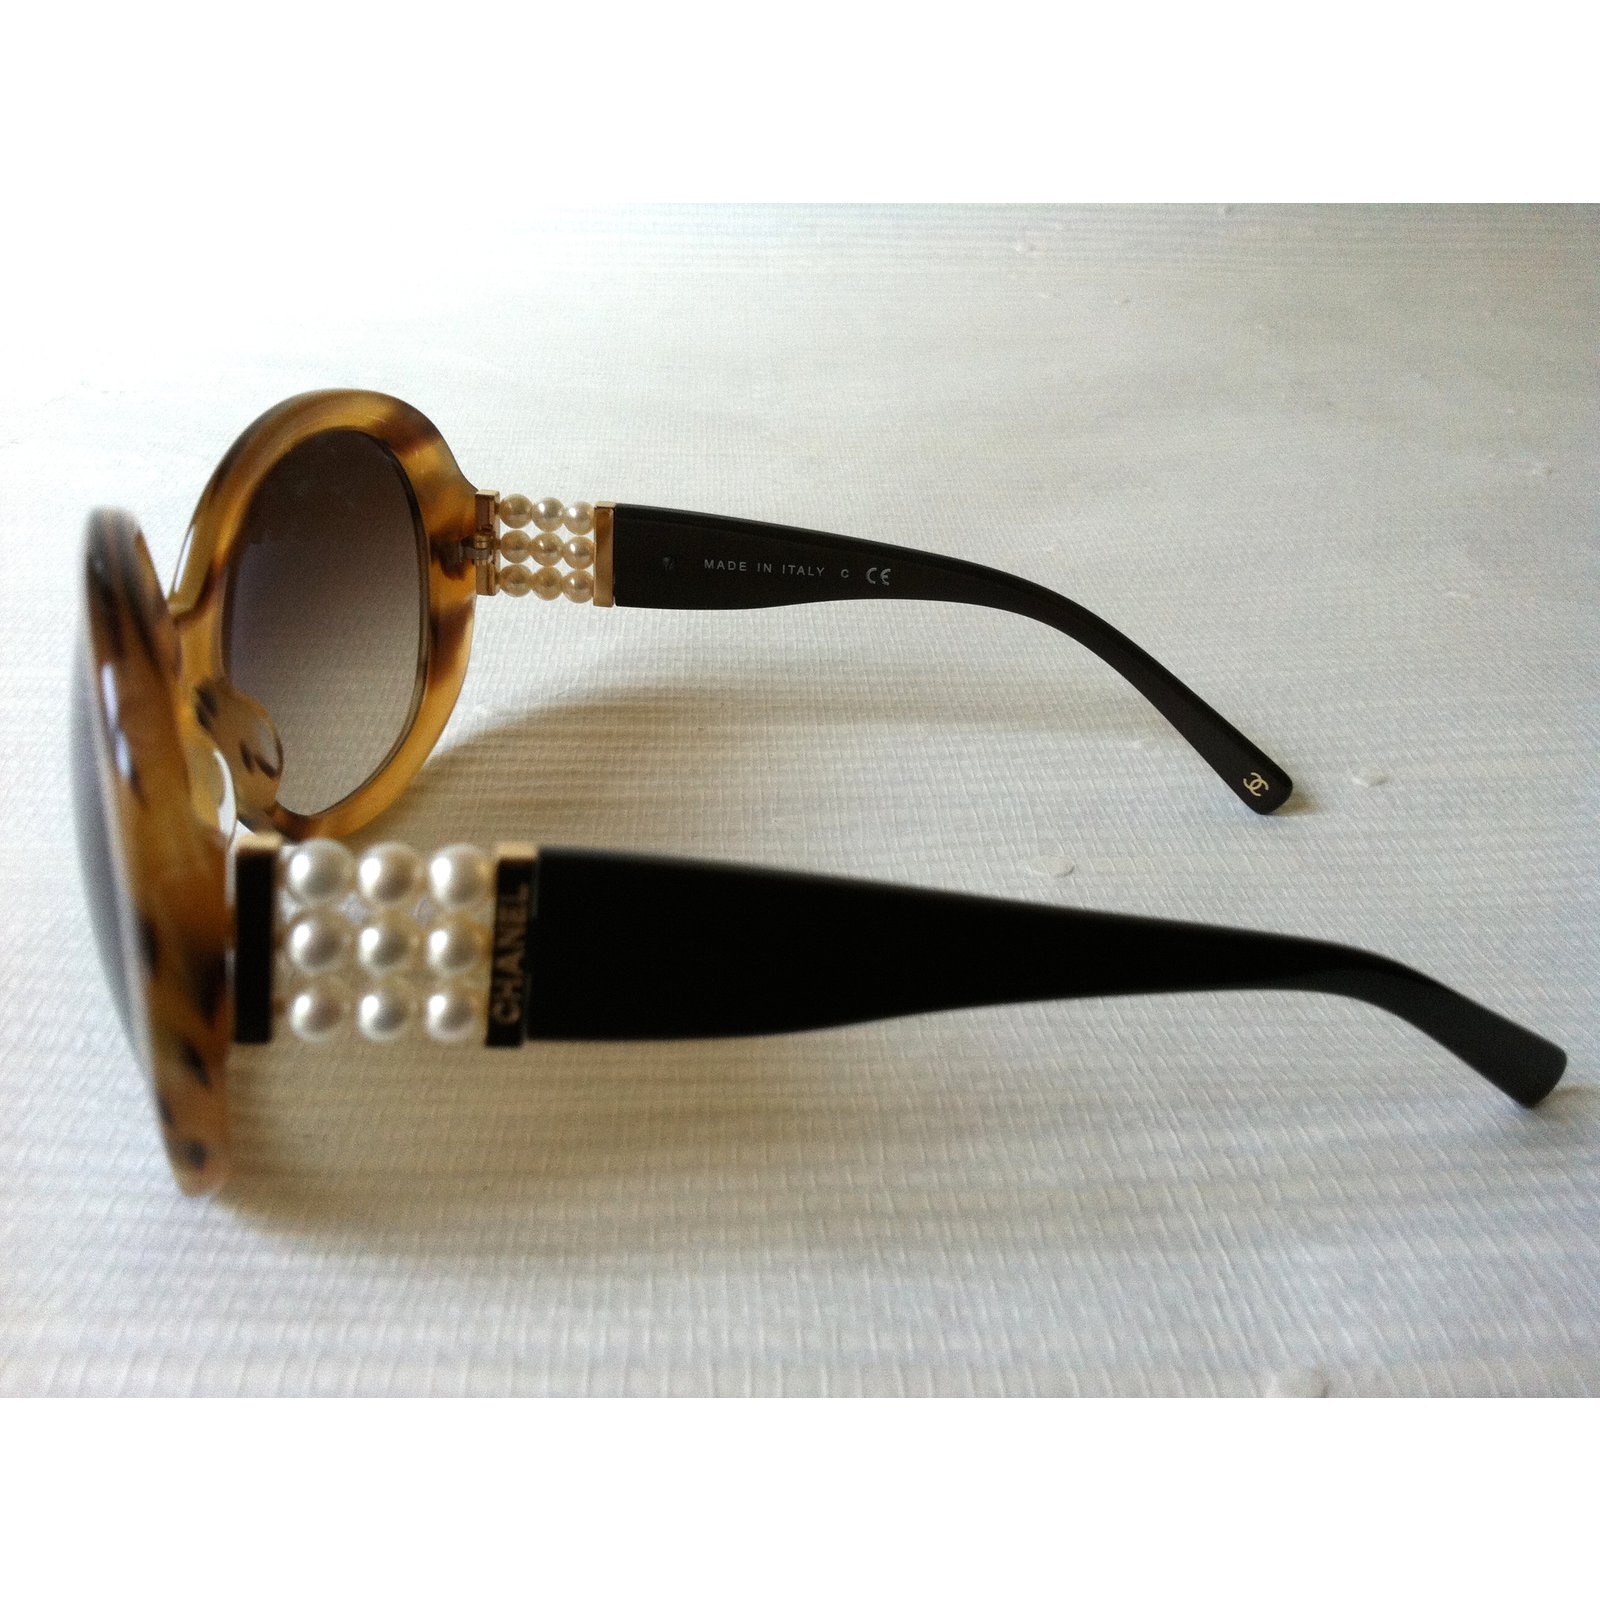 8e3d64121eb3c Lunettes Chanel Lunettes chanel perle collection rare Acetate Marron clair  ref.19929 - Joli Closet